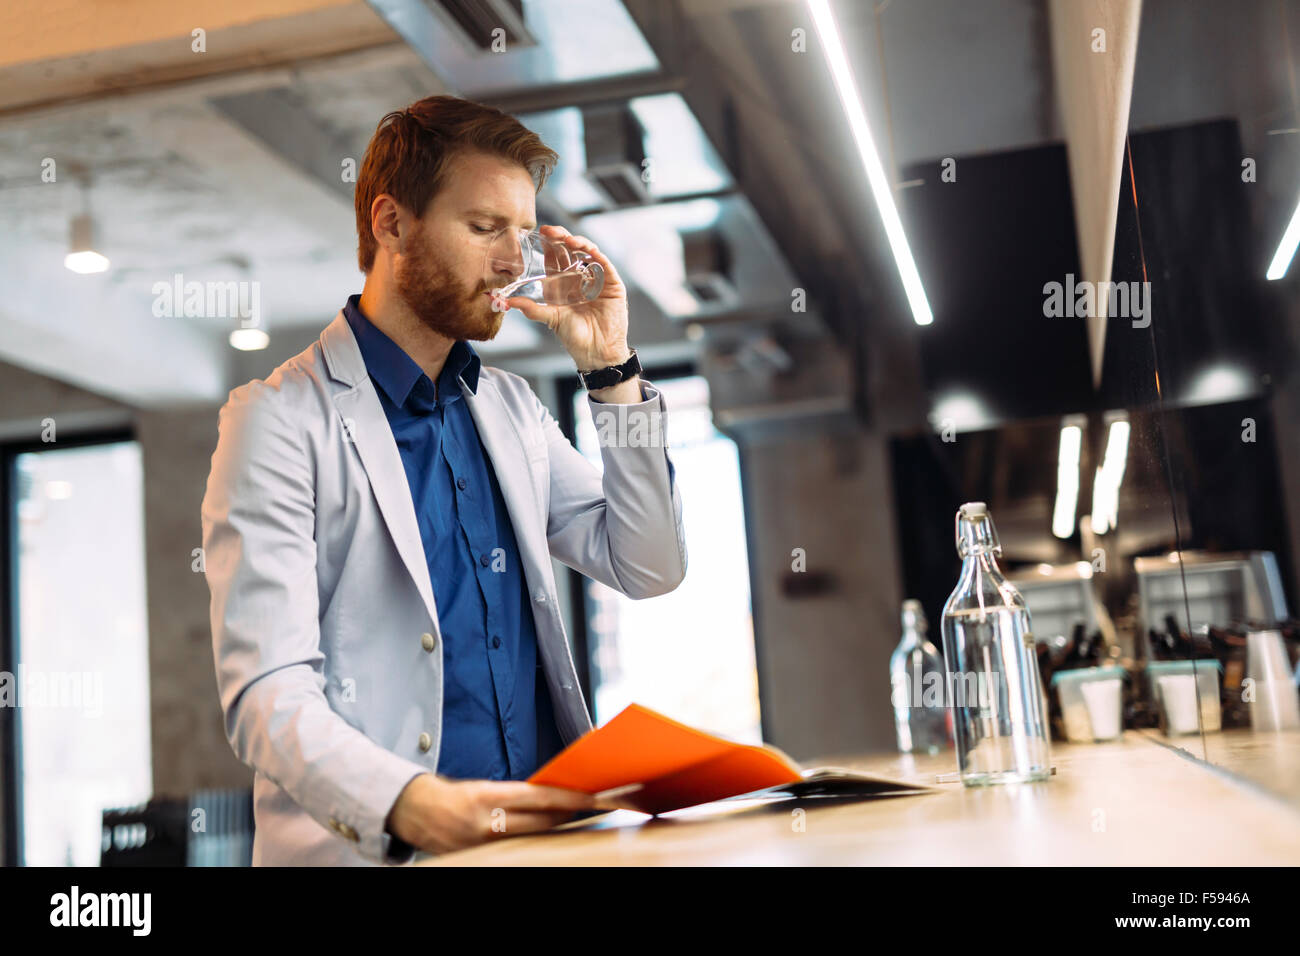 Businessman drinking water and reading paper during break - Stock Image